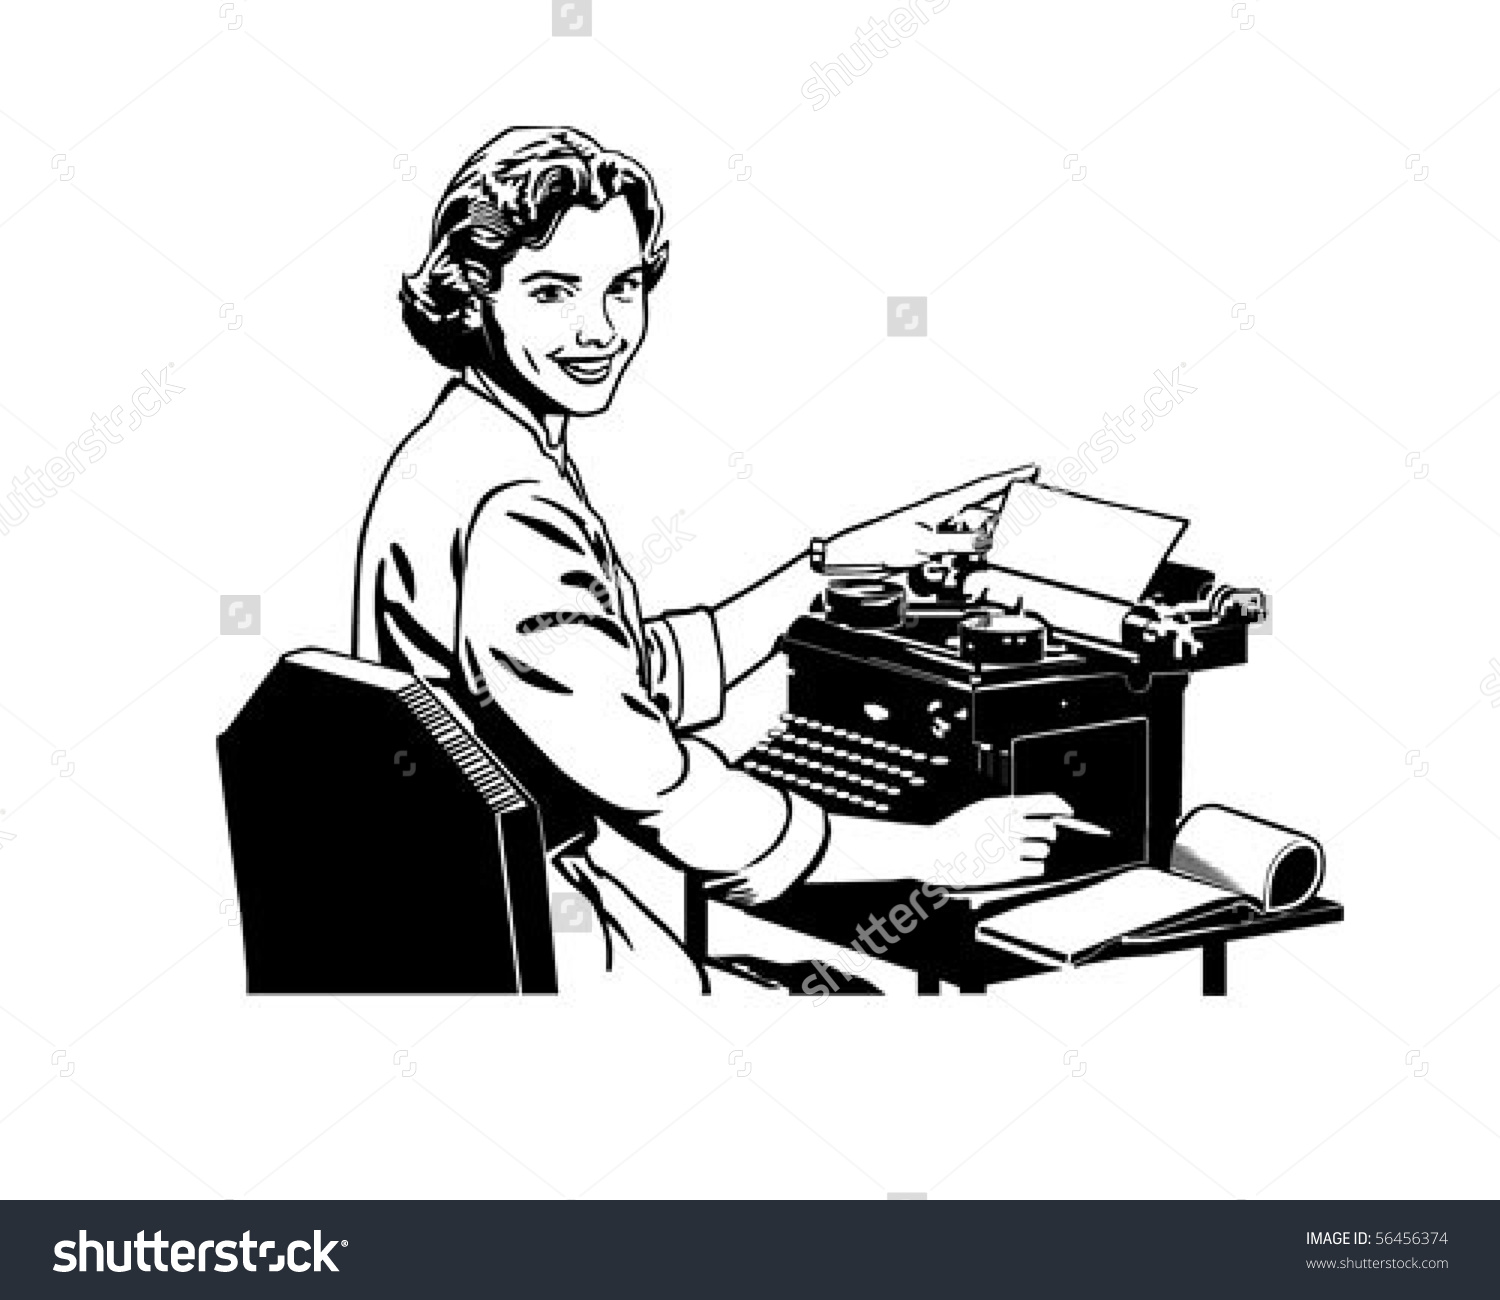 Retro Secretary Retro Clip Art Stock Vector 56456374.